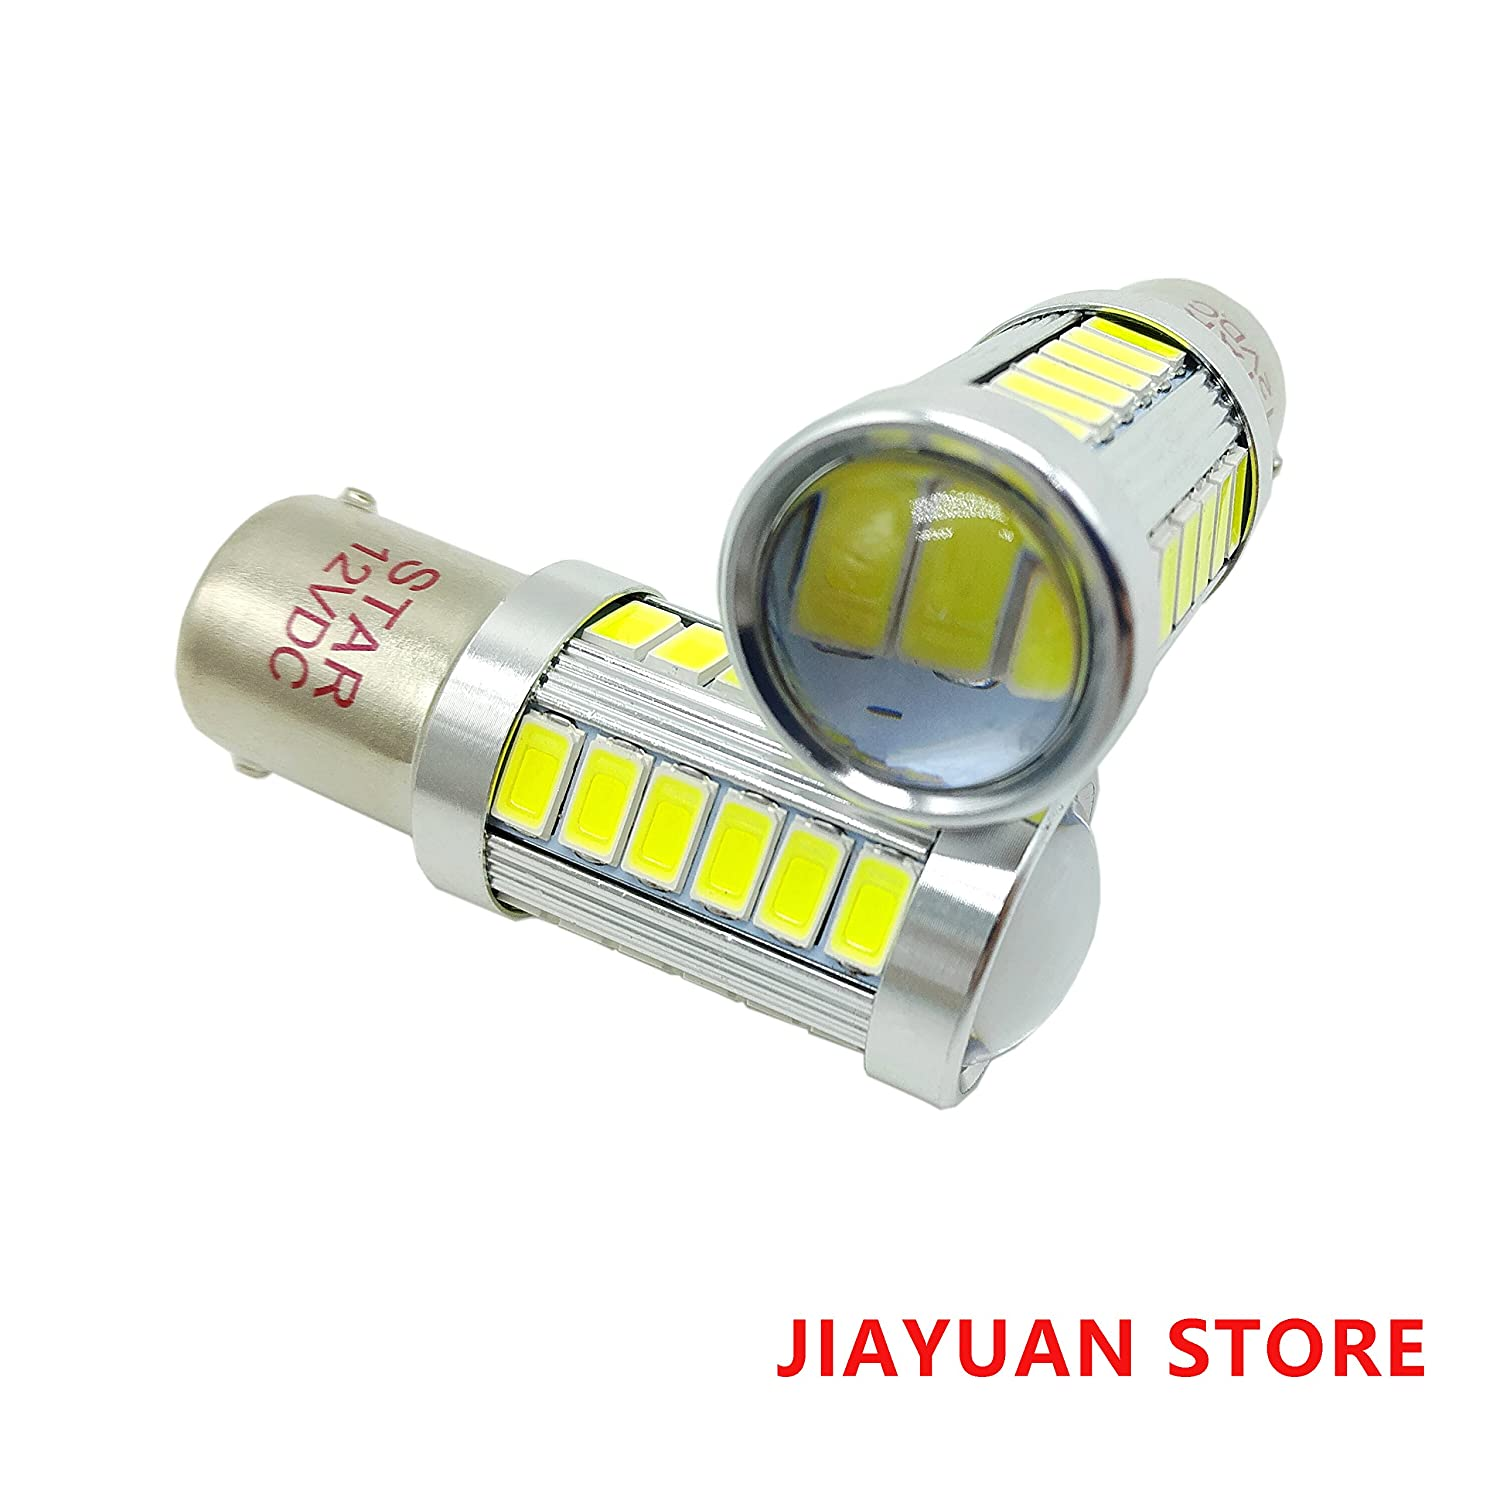 BA15D 24 SMD 1076 1142 68 90 1004 1130 1158 1176 1178 Car LED Bulbs Replacement for RV Camper Turn Tail Singnal Lamp, 12V DC, White, Pack of 2 Stars Opto